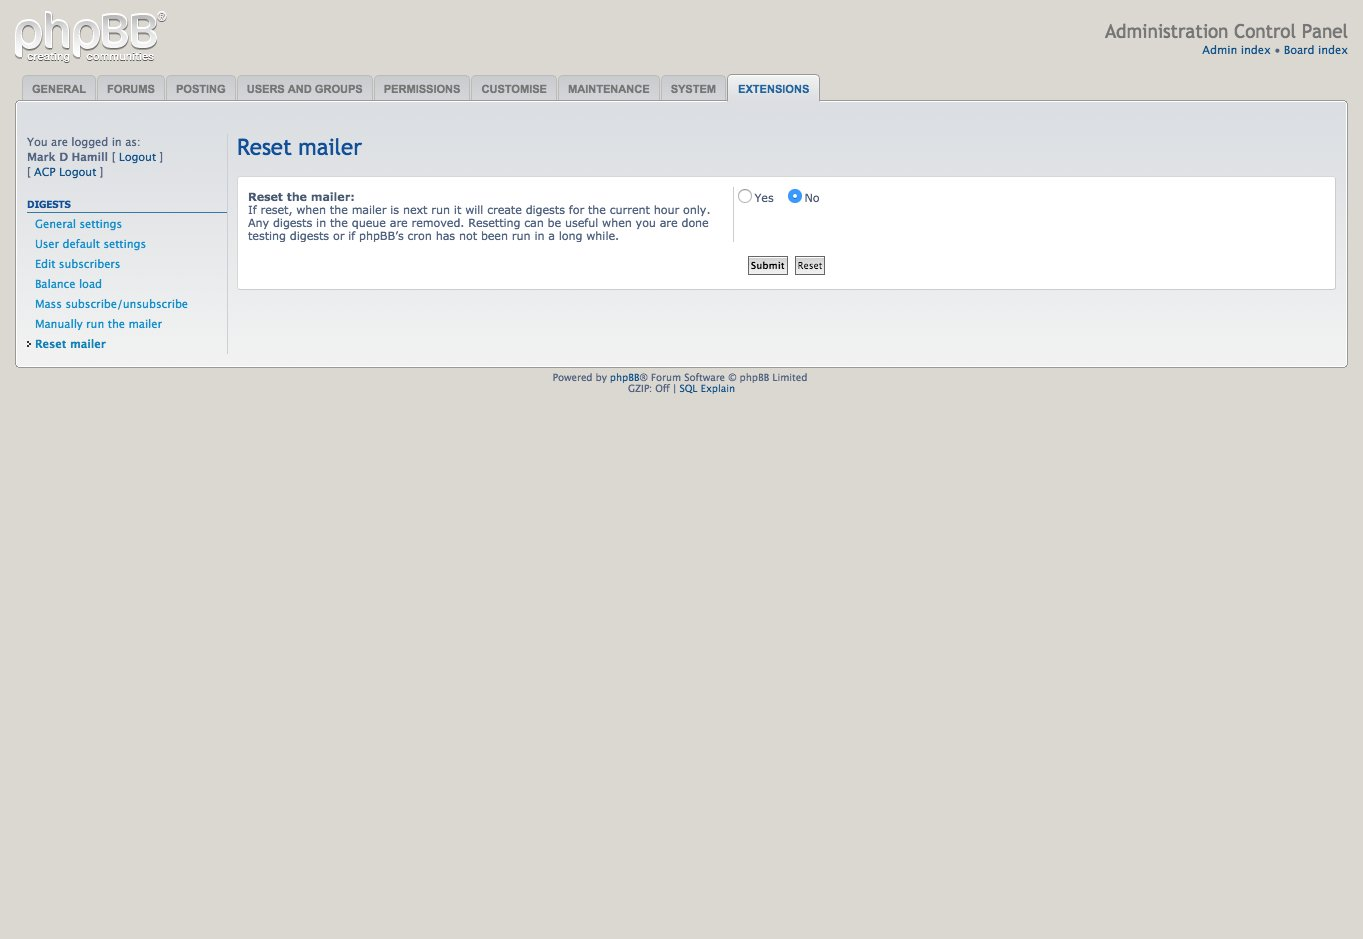 Administration control panel - Reset  mailer (3.2.11)